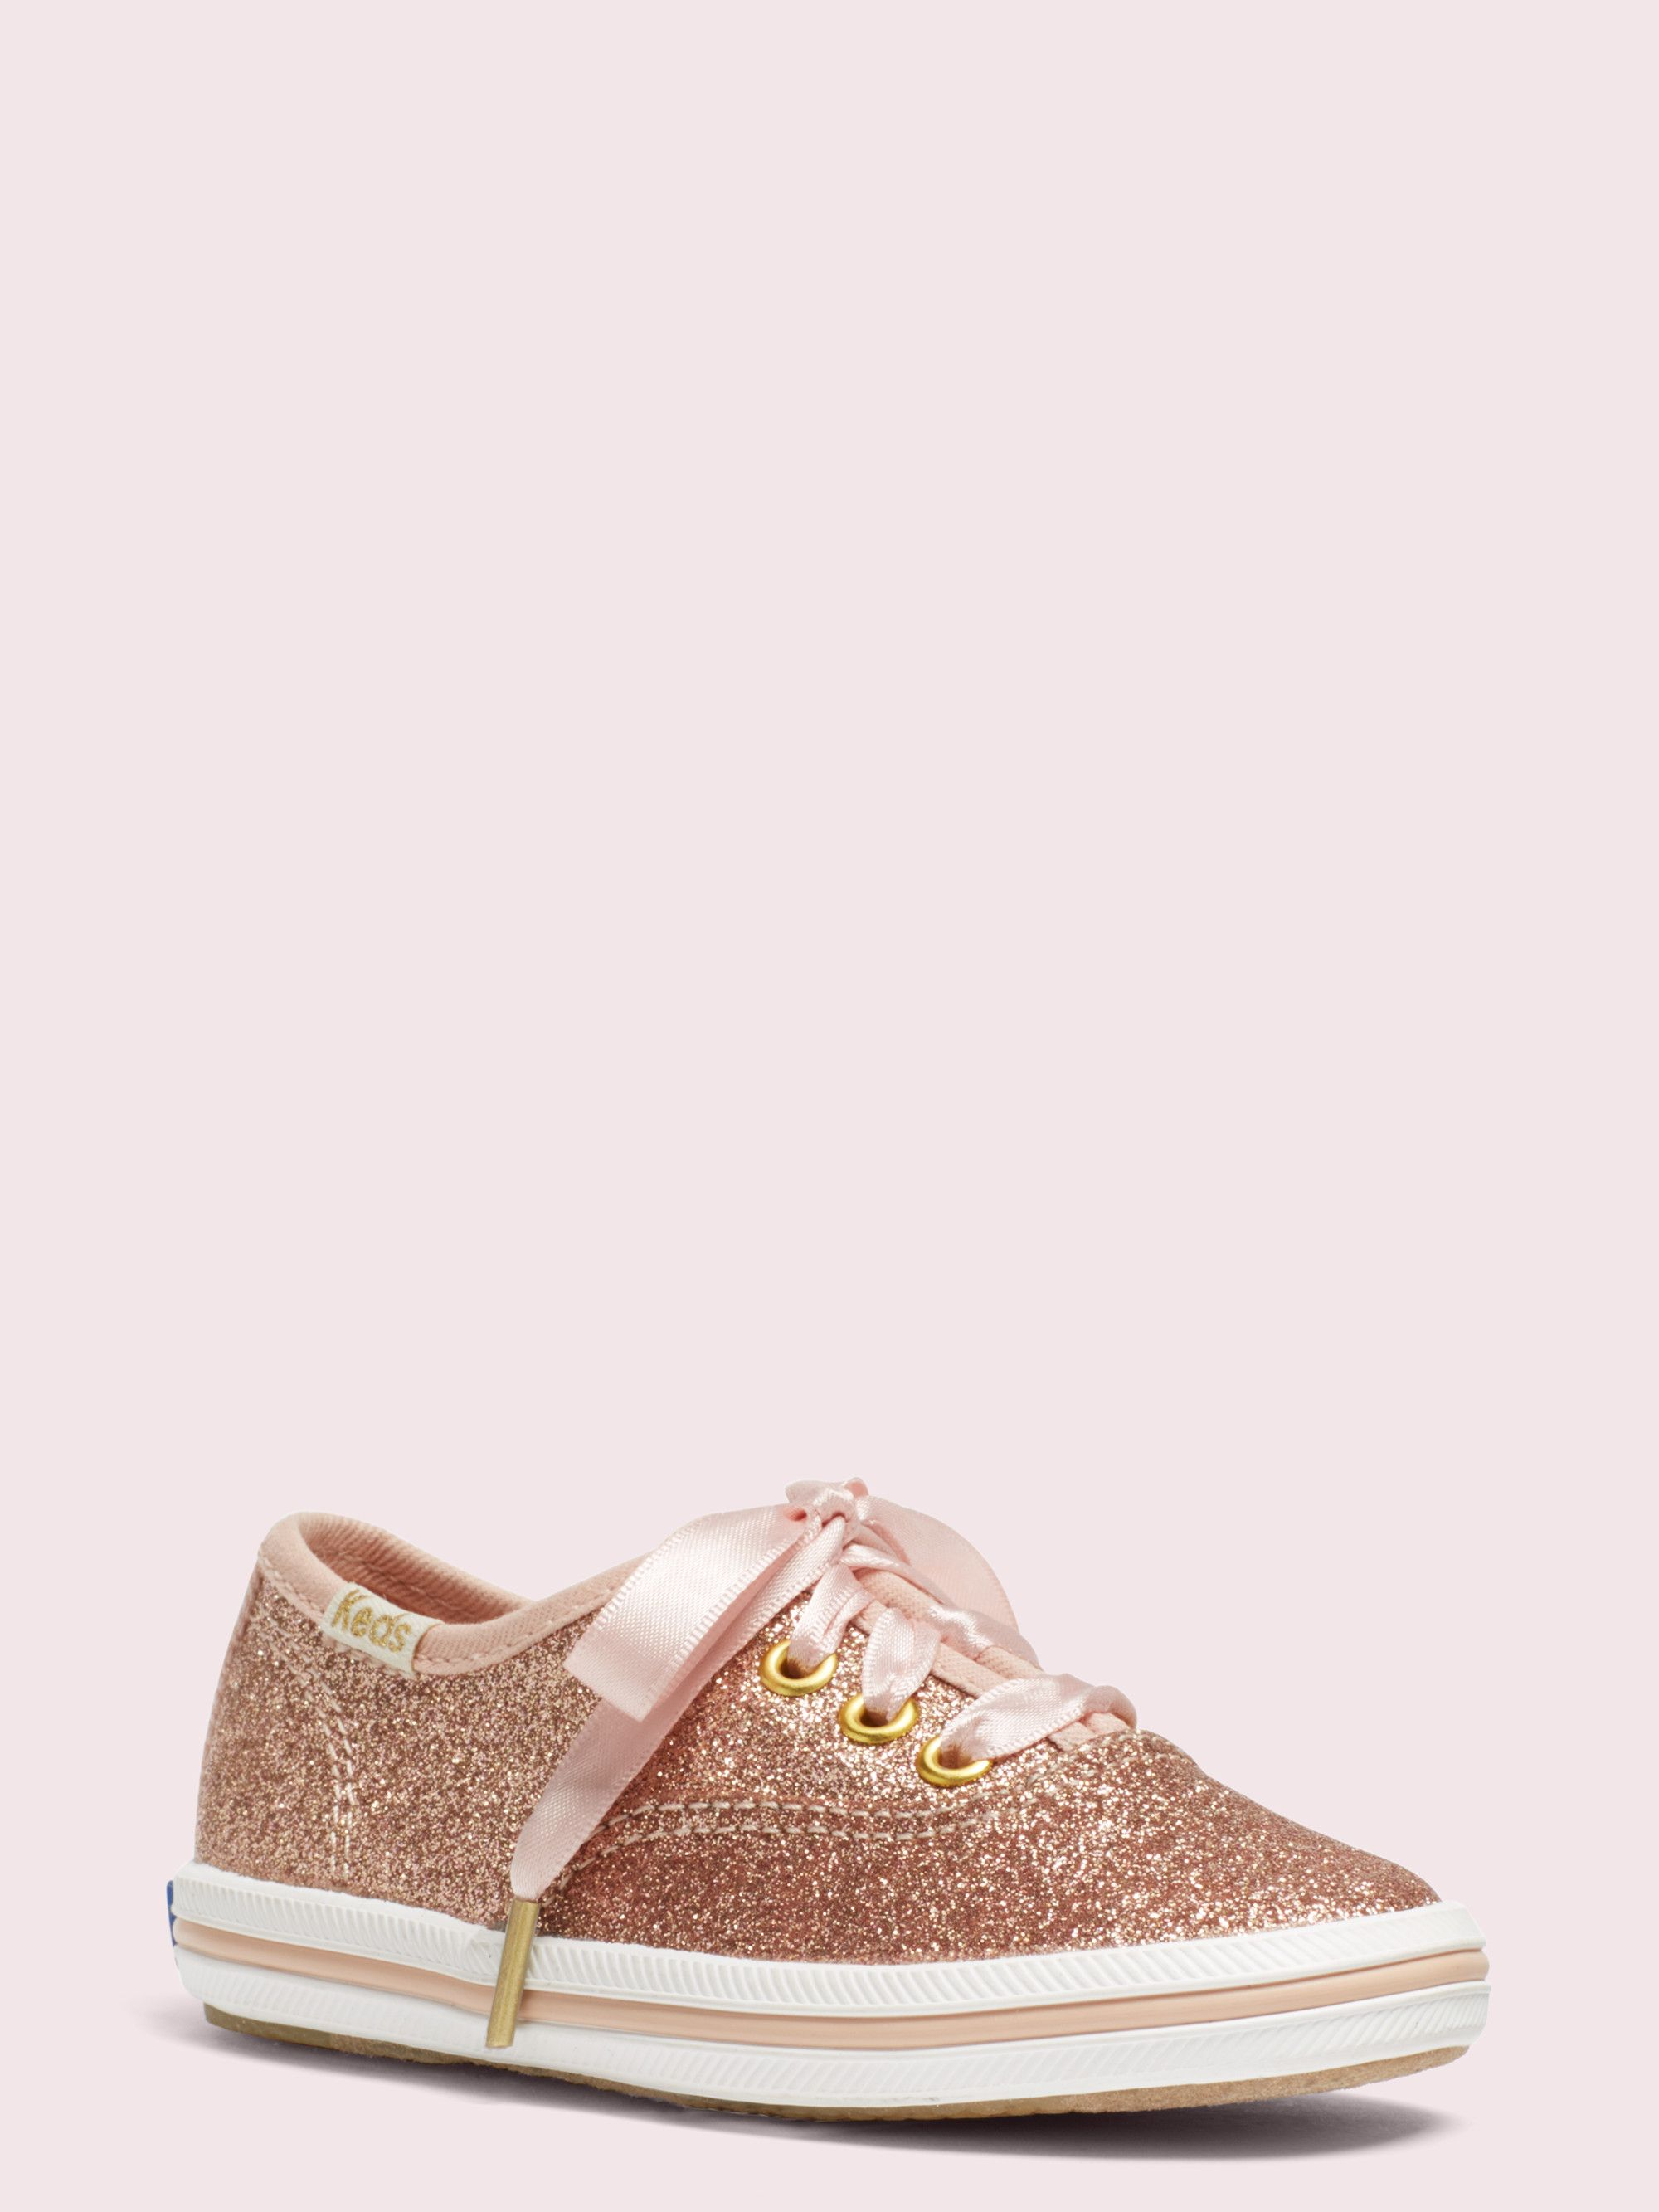 new appearance discount shop exclusive deals keds kids x kate spade new york champion glitter toddler sneakers ...